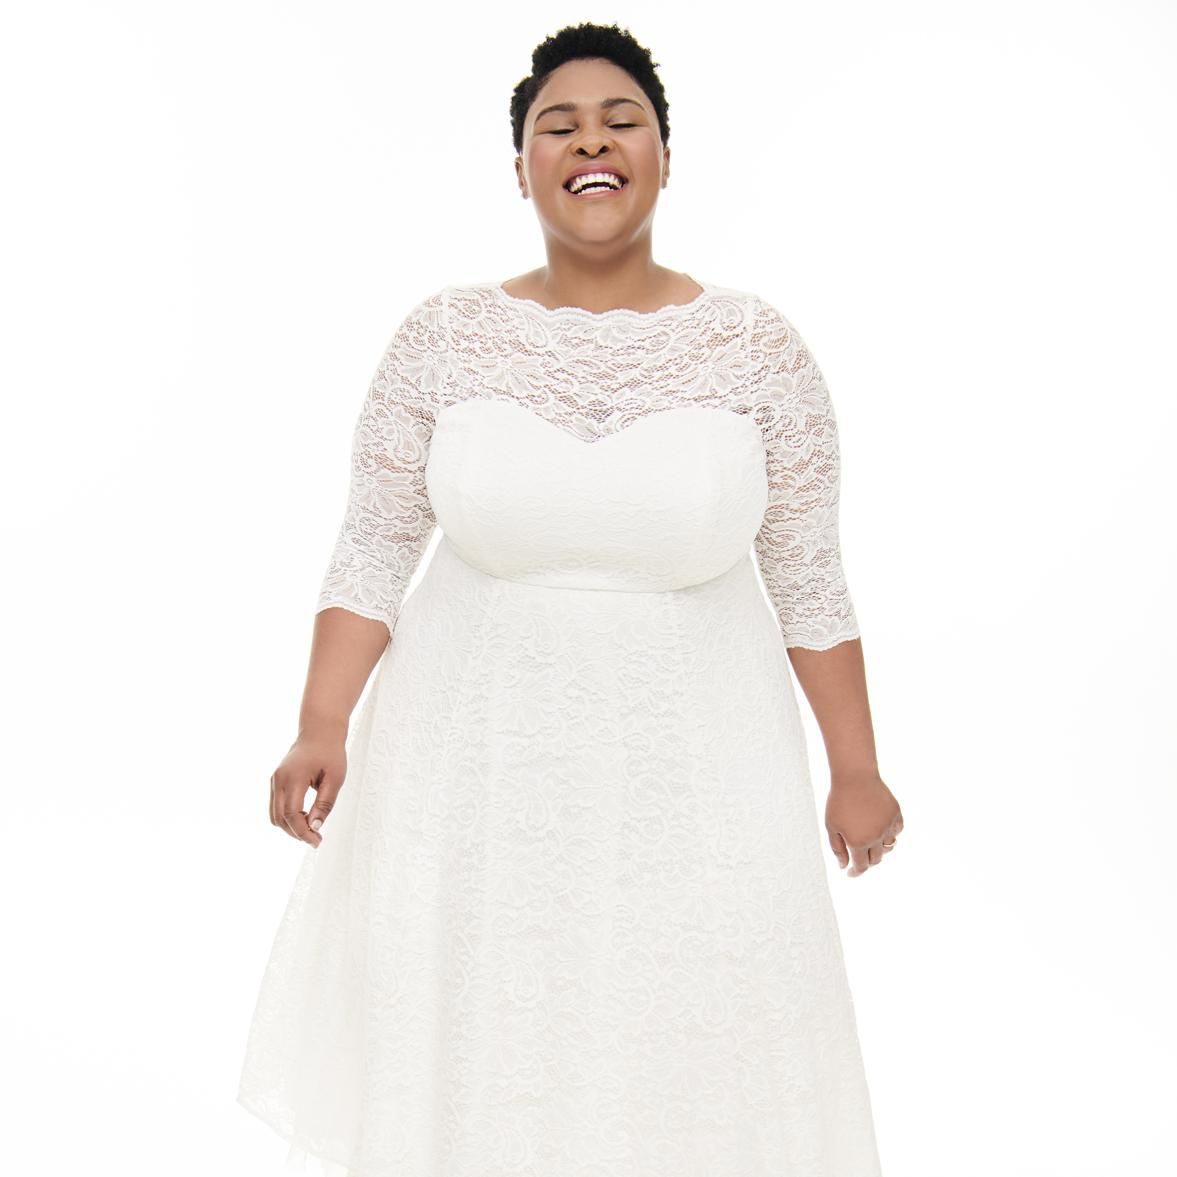 Plus-Size Brand Torrid Reveals New Wedding Capsule Collection